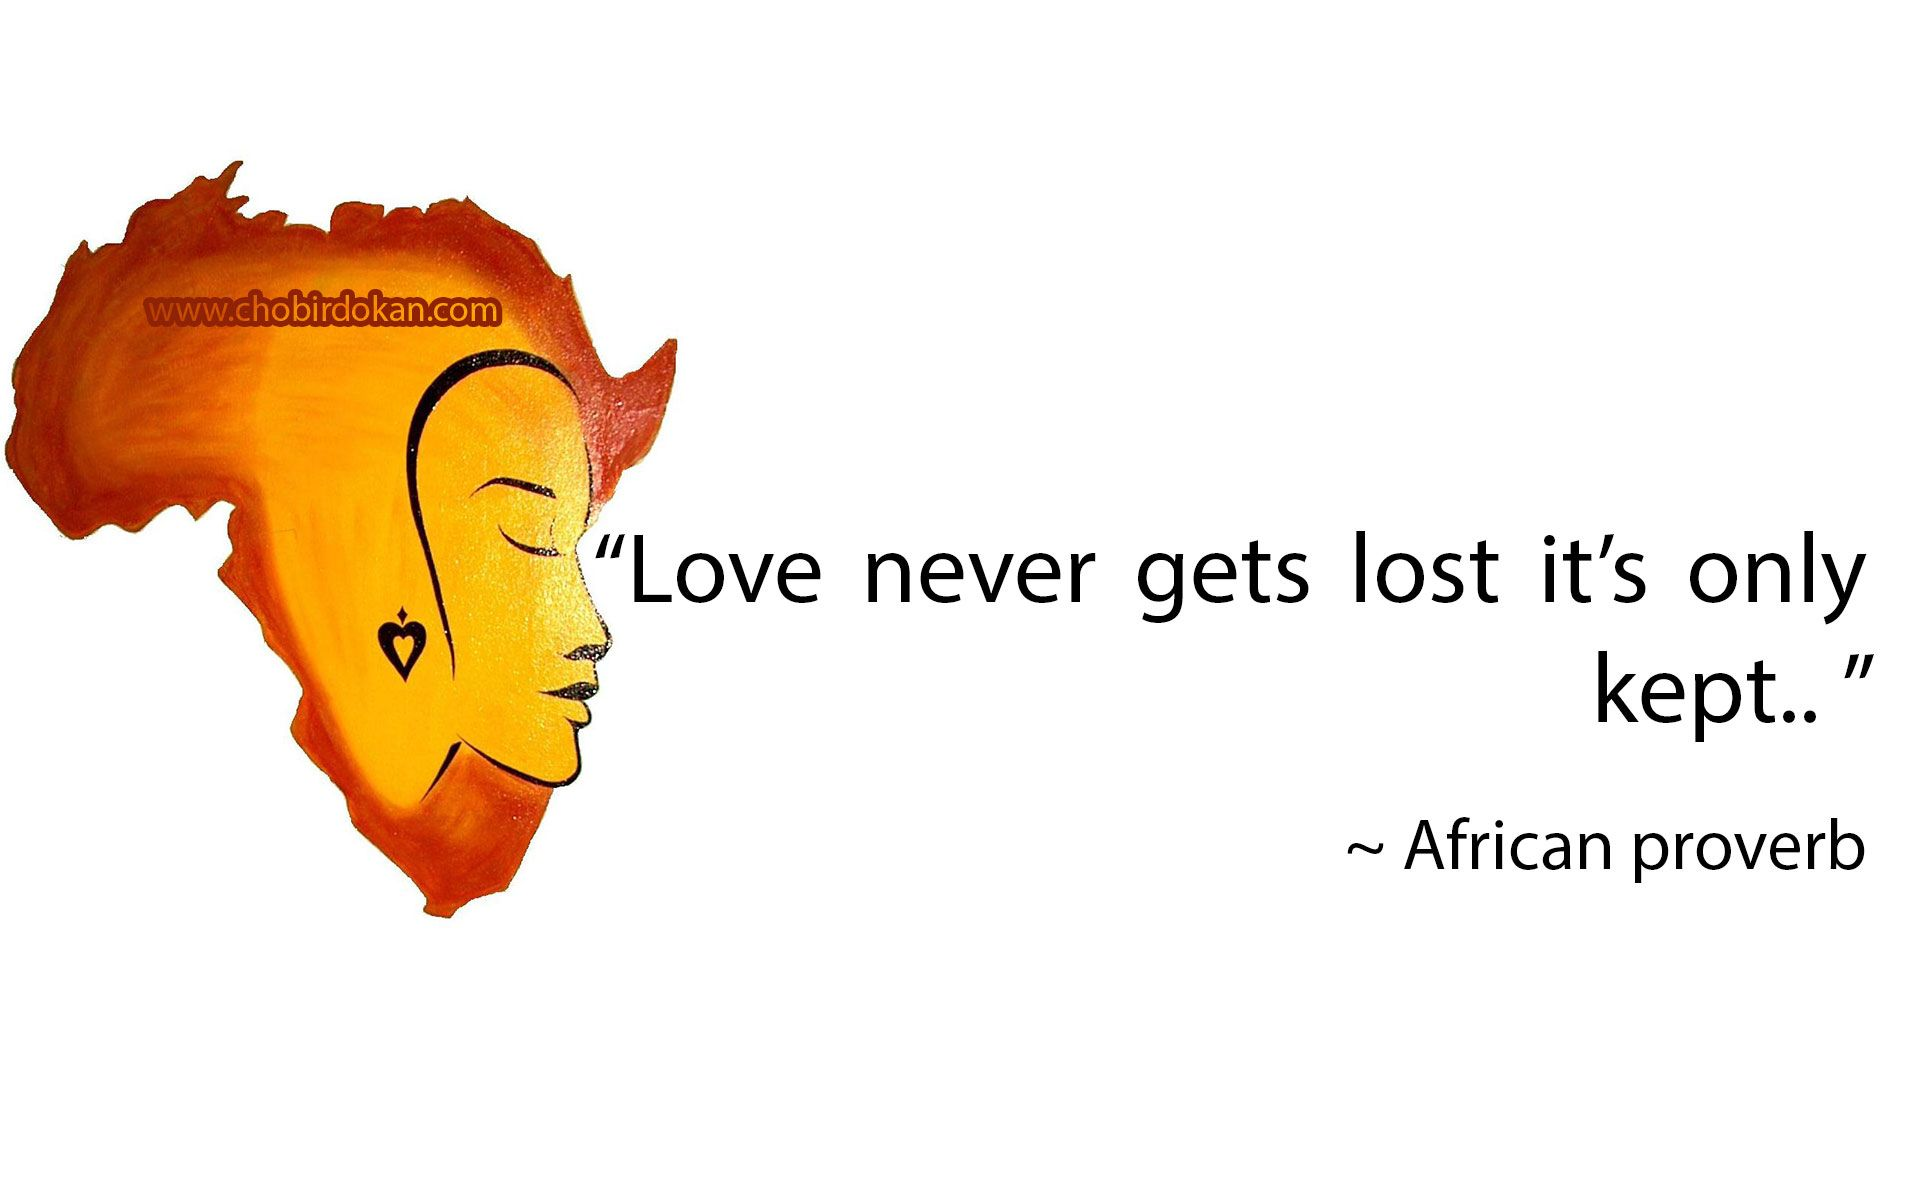 African proverbs about love